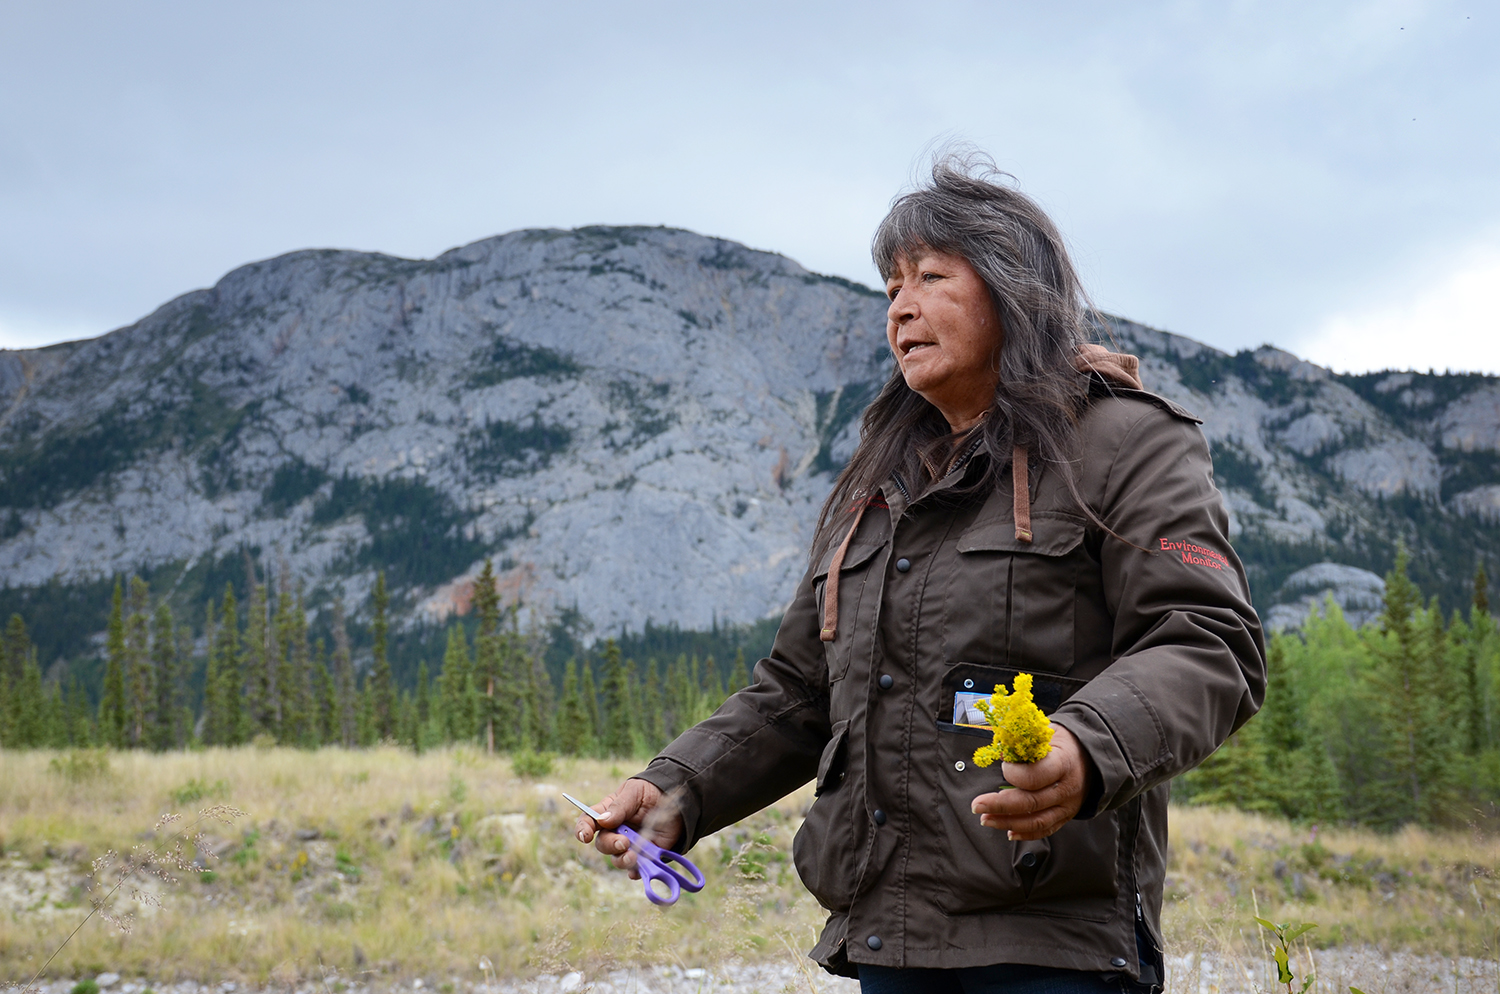 Donna Wolfe has been harvesting northern plants since she was a child, but her hobby recently turned into a profession. She turns them into teas, salves, ointments and other medicines